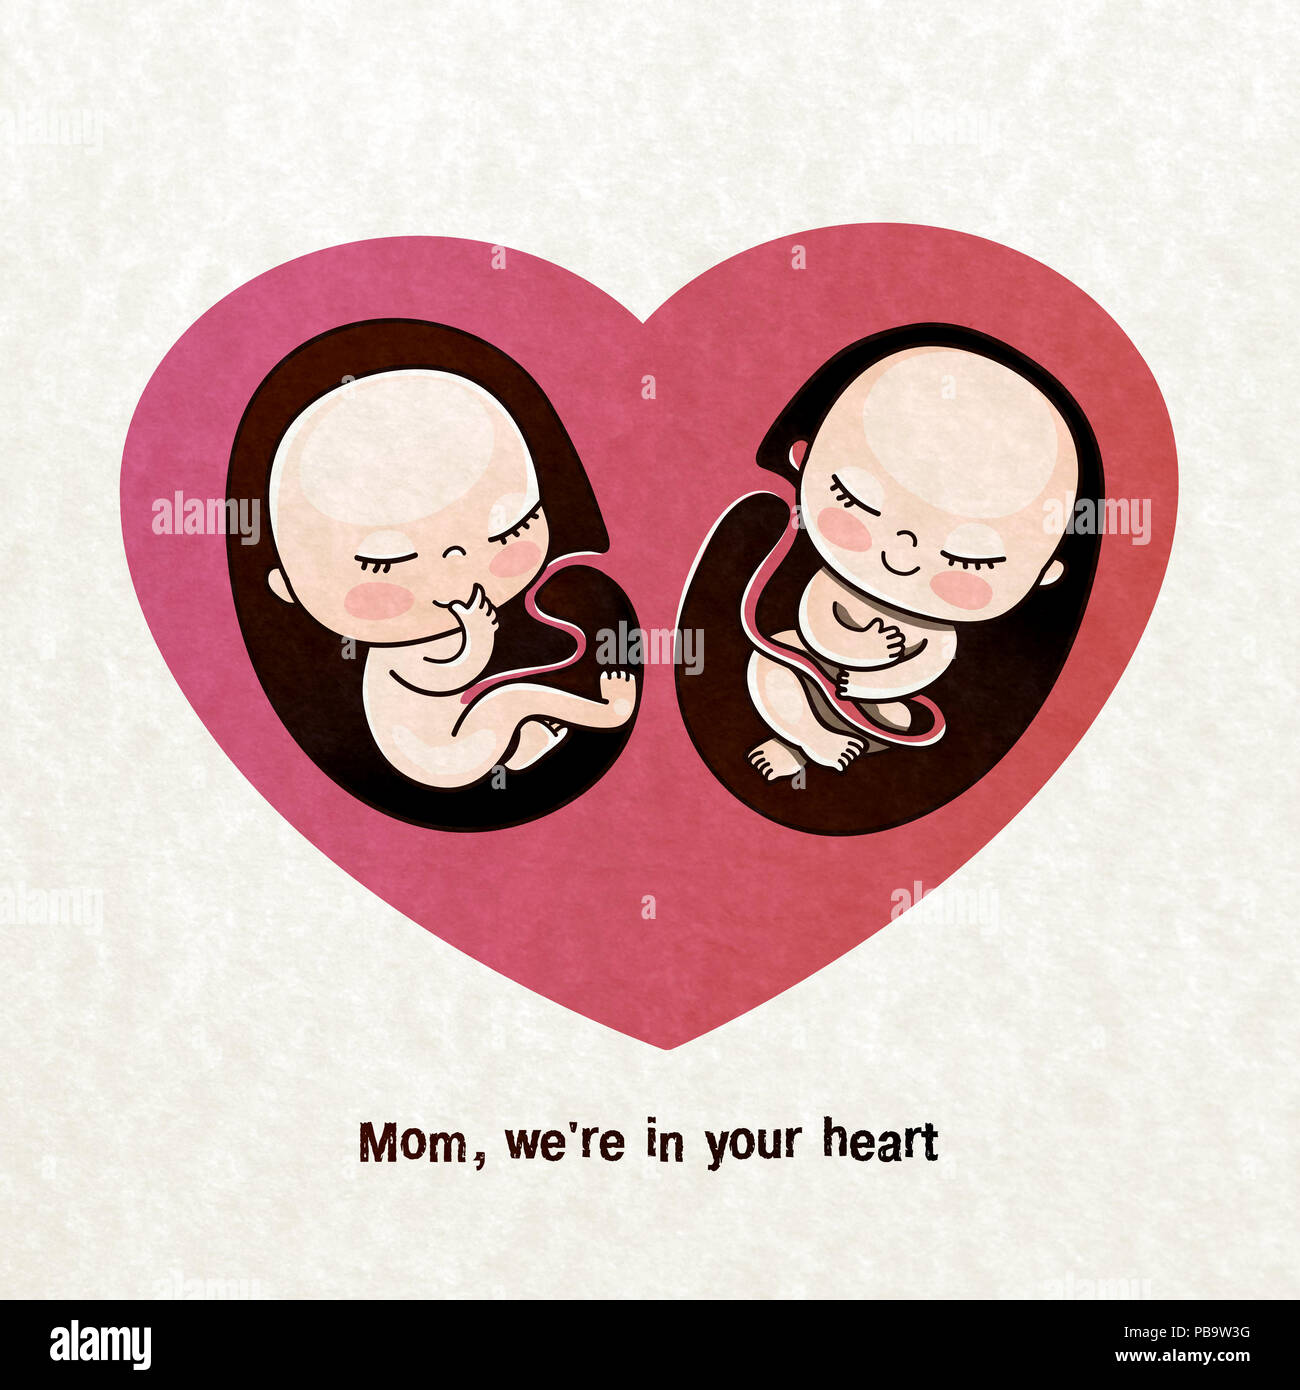 Unborn Children Are Twins In The Mothers Heart Postcard For Mom Birthday Greetings Congratulations On A Newborn Gift To Pregnant Woman